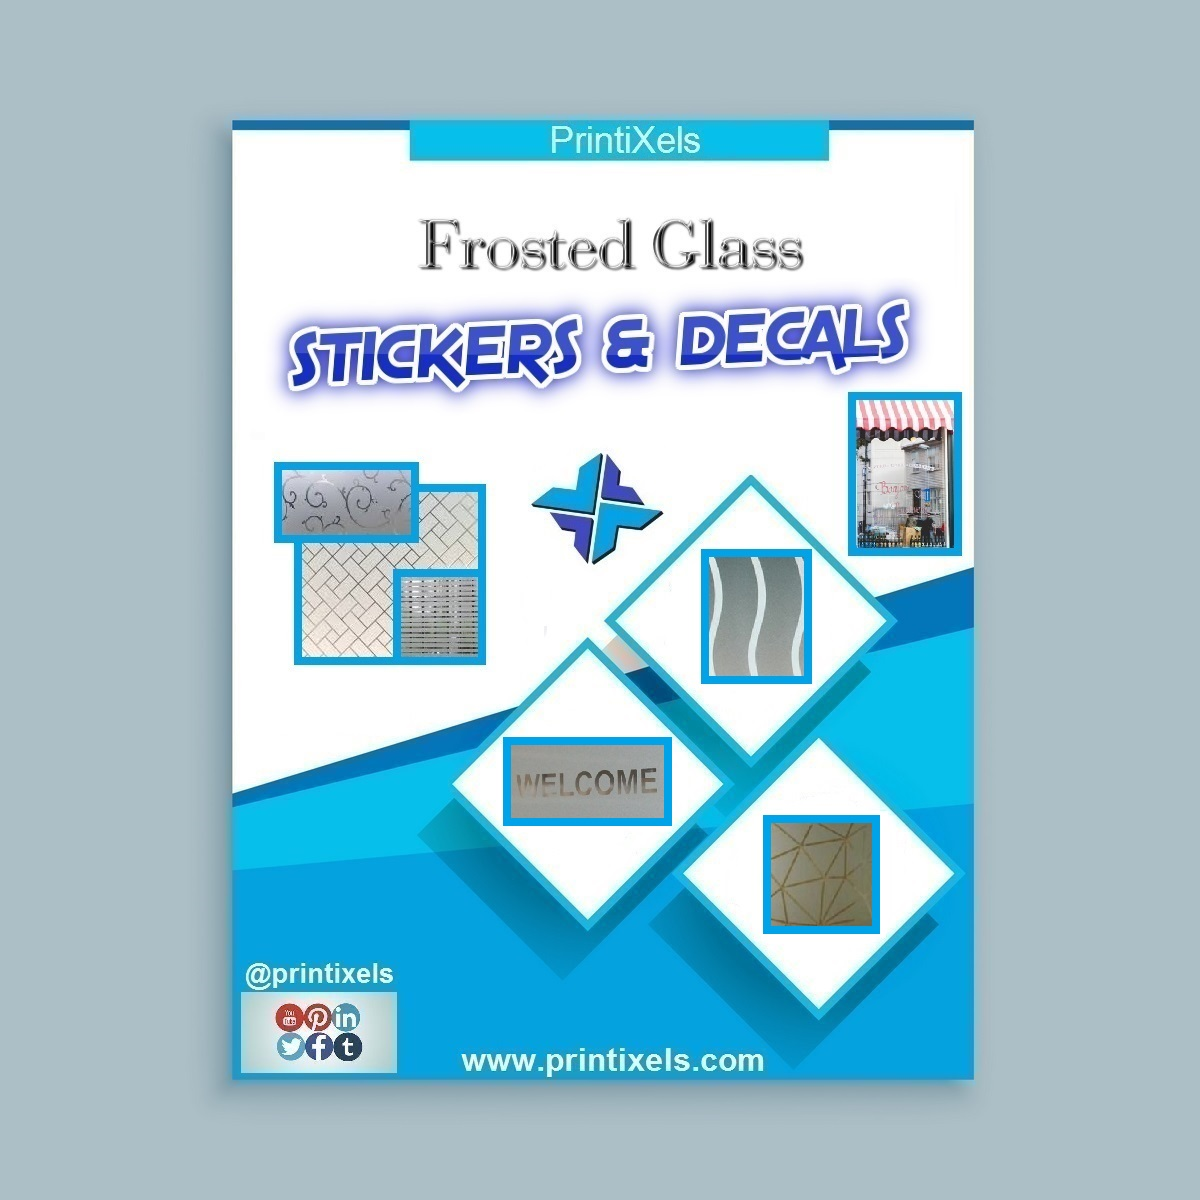 Car sticker maker philippines - Custom Frosted Glass Stickers Decals